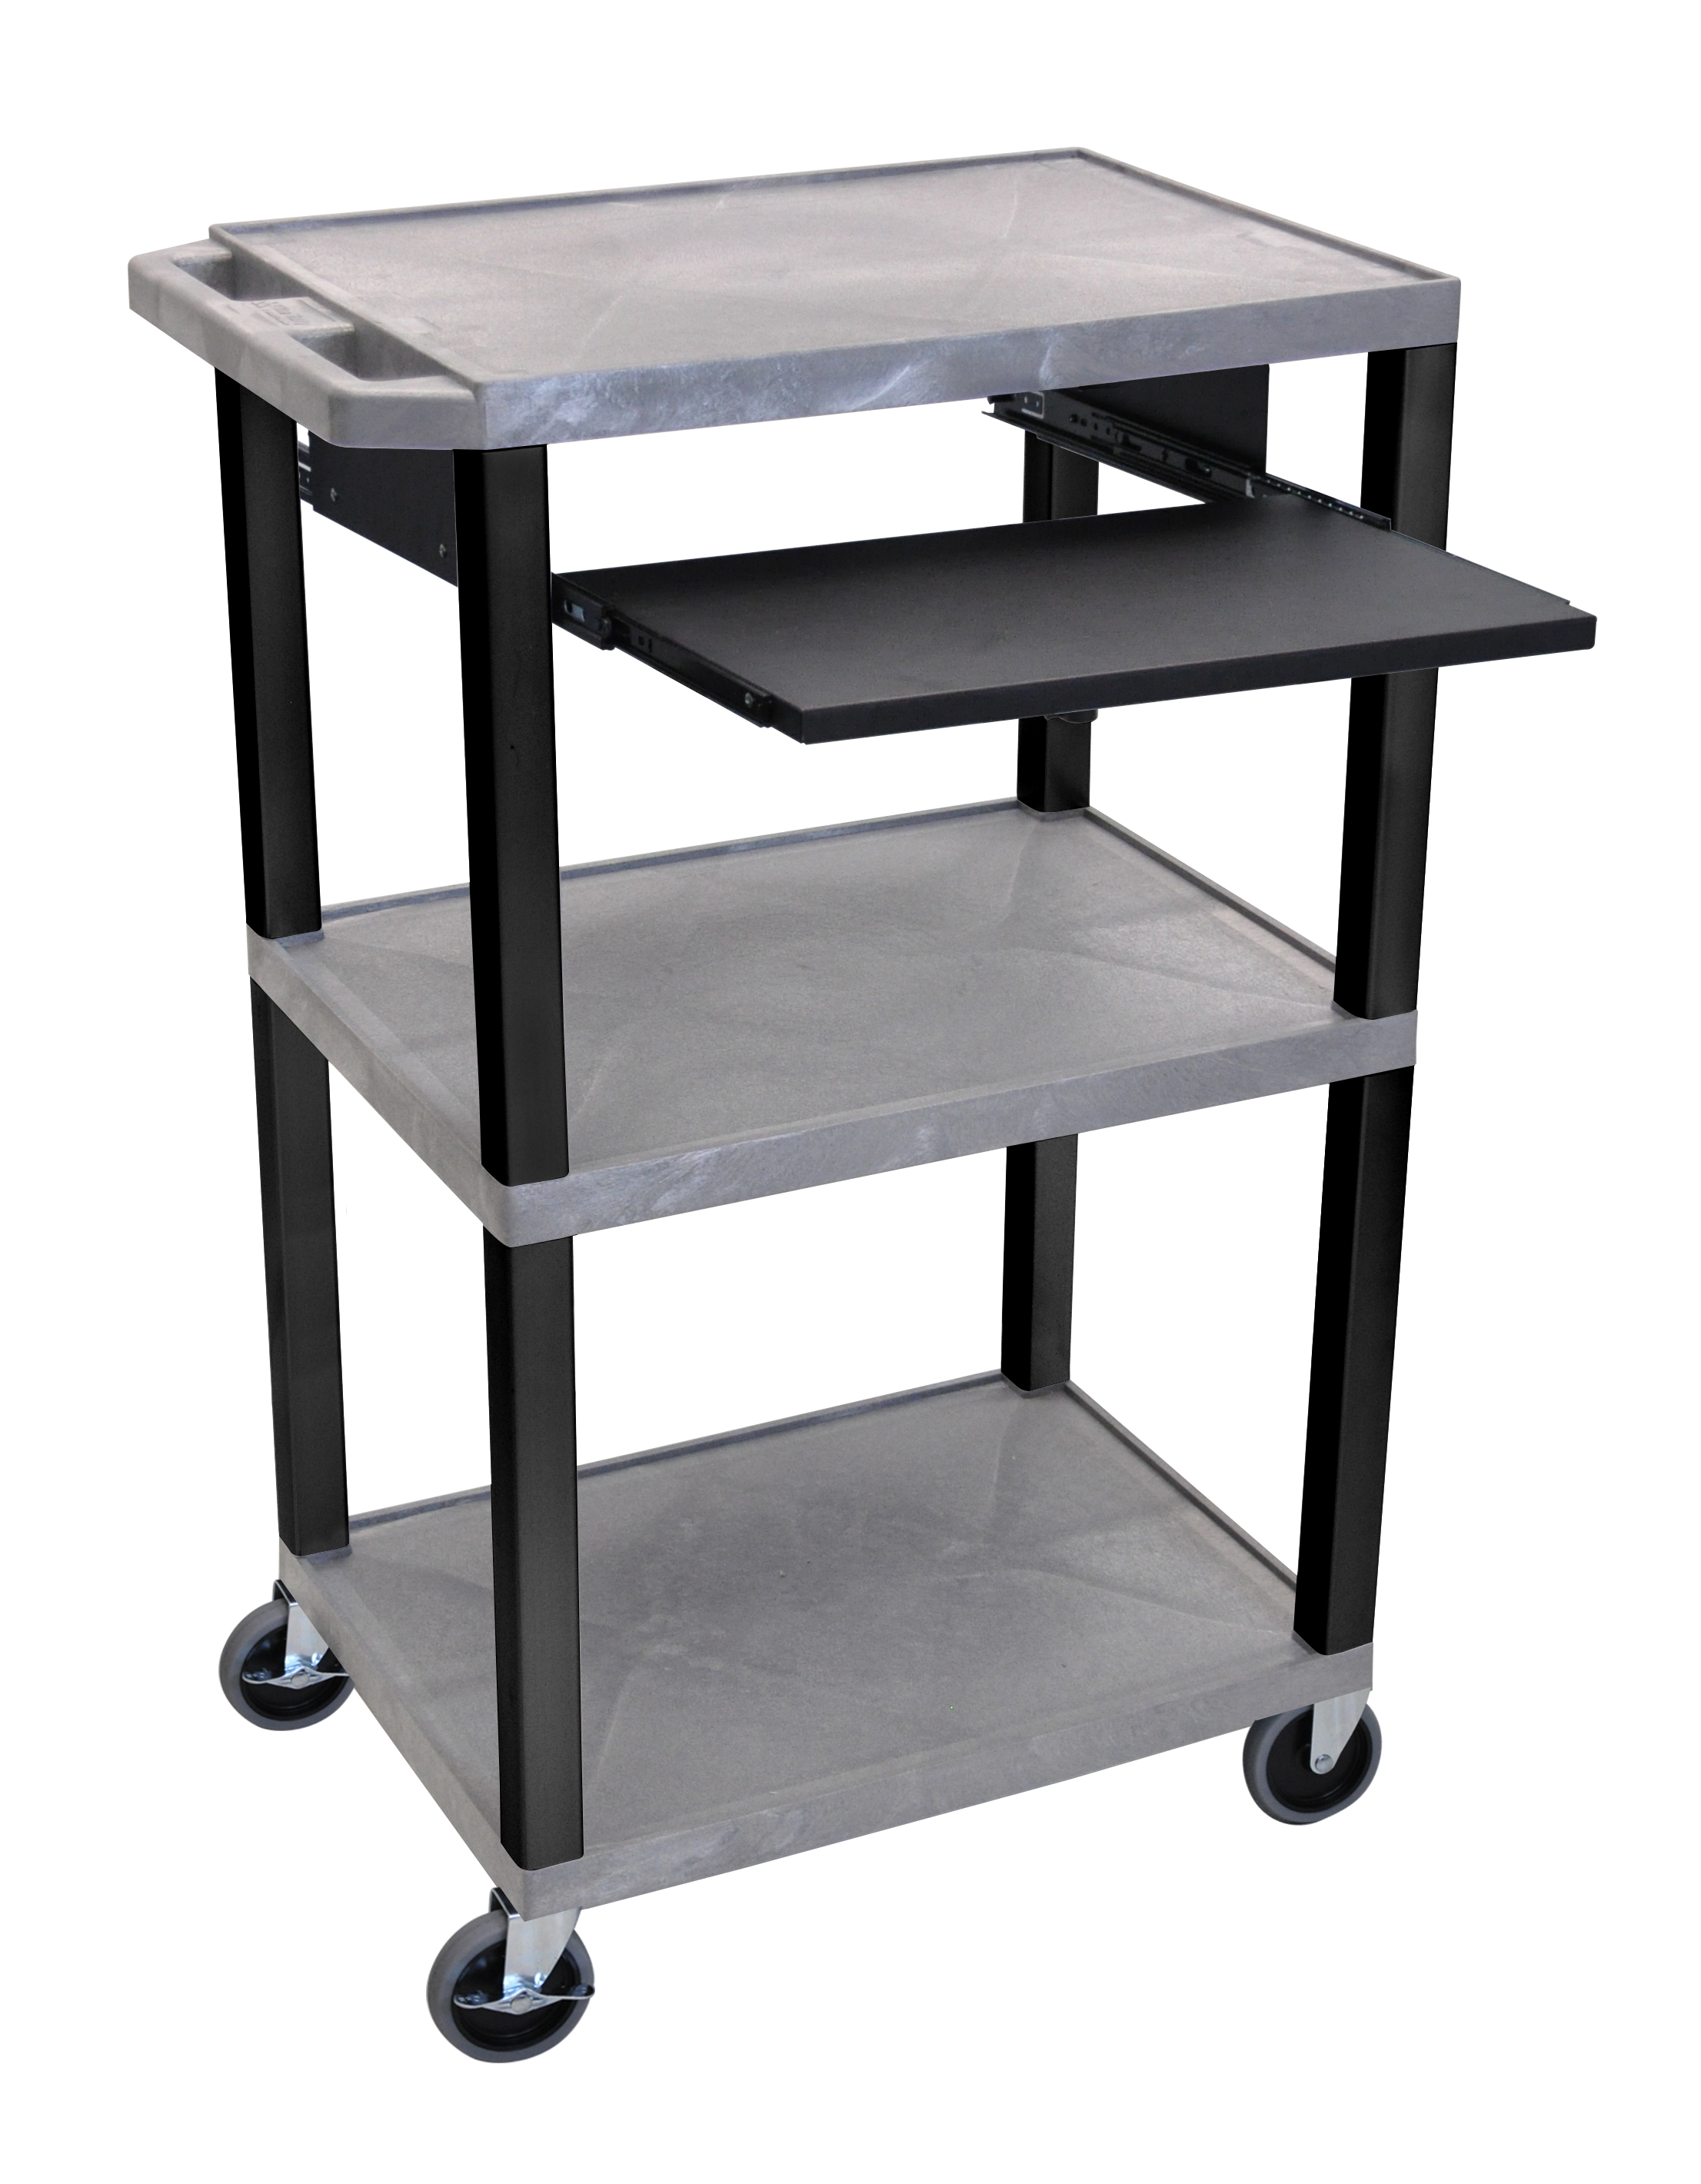 Offex Presentation Cart with Open Shelves and Pull Out Tray Gray and Black